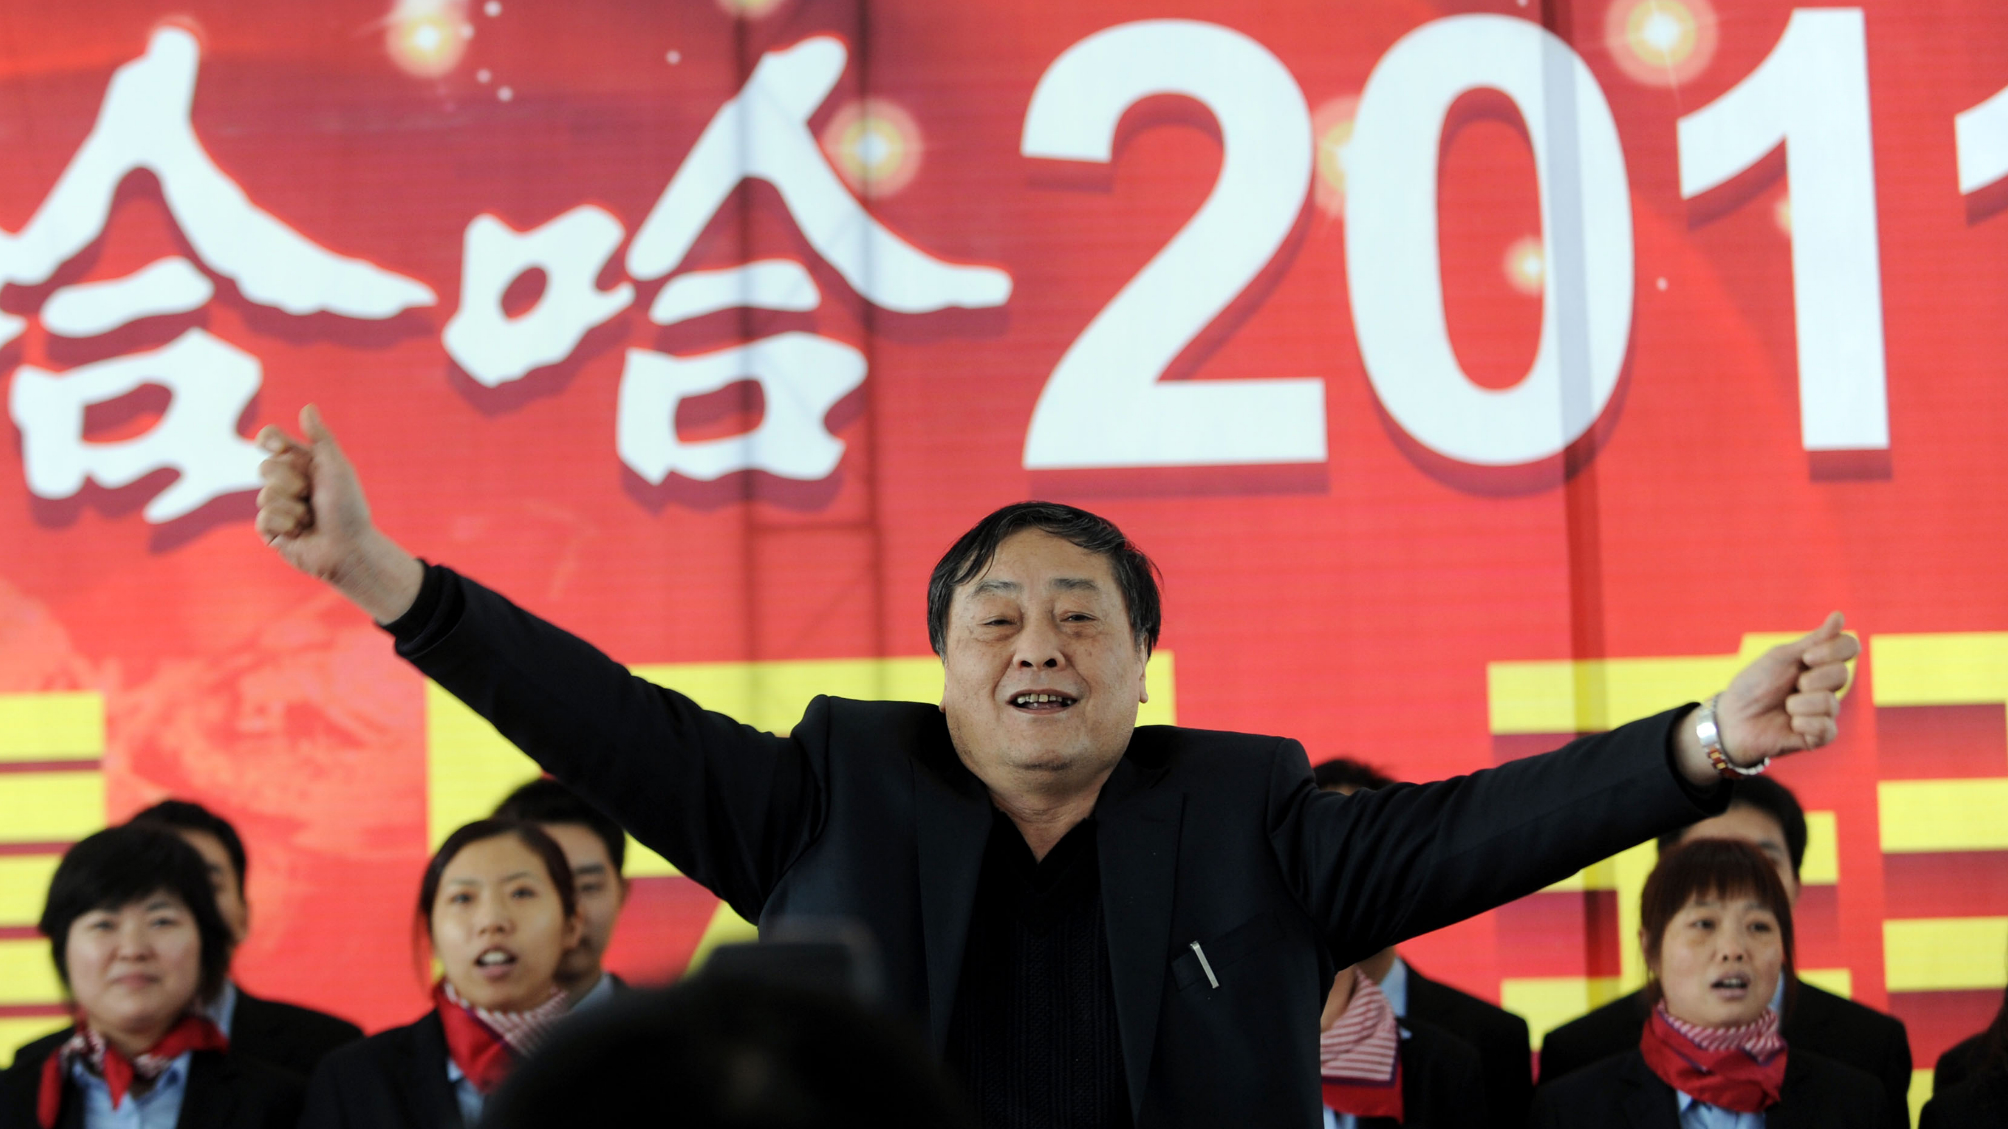 Zong Qinghou, center, Chairman and CEO of Wahaha Group, sings with his employees to celebrate the Spring Festival at a plant of Wahaha in Hangzhou city, east Chinas Zhejiang province, 2 February 2011. Chinas richest man, Zong Qinghou, may be known for his frugality, but he bailed on two free dinners in February, snubbing invitations from Britains Queen Elizabeth and Prime Minister David Cameron. The queen invited me for February 6; the prime minister invited me for the 12th. Lunar New Year was on the 9th, the founder of Chinas third-largest beverage maker Wahaha told China Entrepreneur Magazine in an interview published on Sunday (5 May 2013). Should I have flown for more then 10 hours, eat and travel back, then fly once again, eat and fly back? he asked. That doesnt make any sense. The invitation from Buckingham Palace could not be confirmed through the official Court Circular, which lists royal engagements. The queen and the prince of Edinburgh did not have any public engagements on February 6, and the prince of Wales met only a eurosceptic House of Lords cross-bencher. On February 12, Downing Street hosted an annual Chinese New Year Reception, at which David Cameron wished xin nian kuai le to the Chinese community in Britain.(Imaginechina via AP Images)